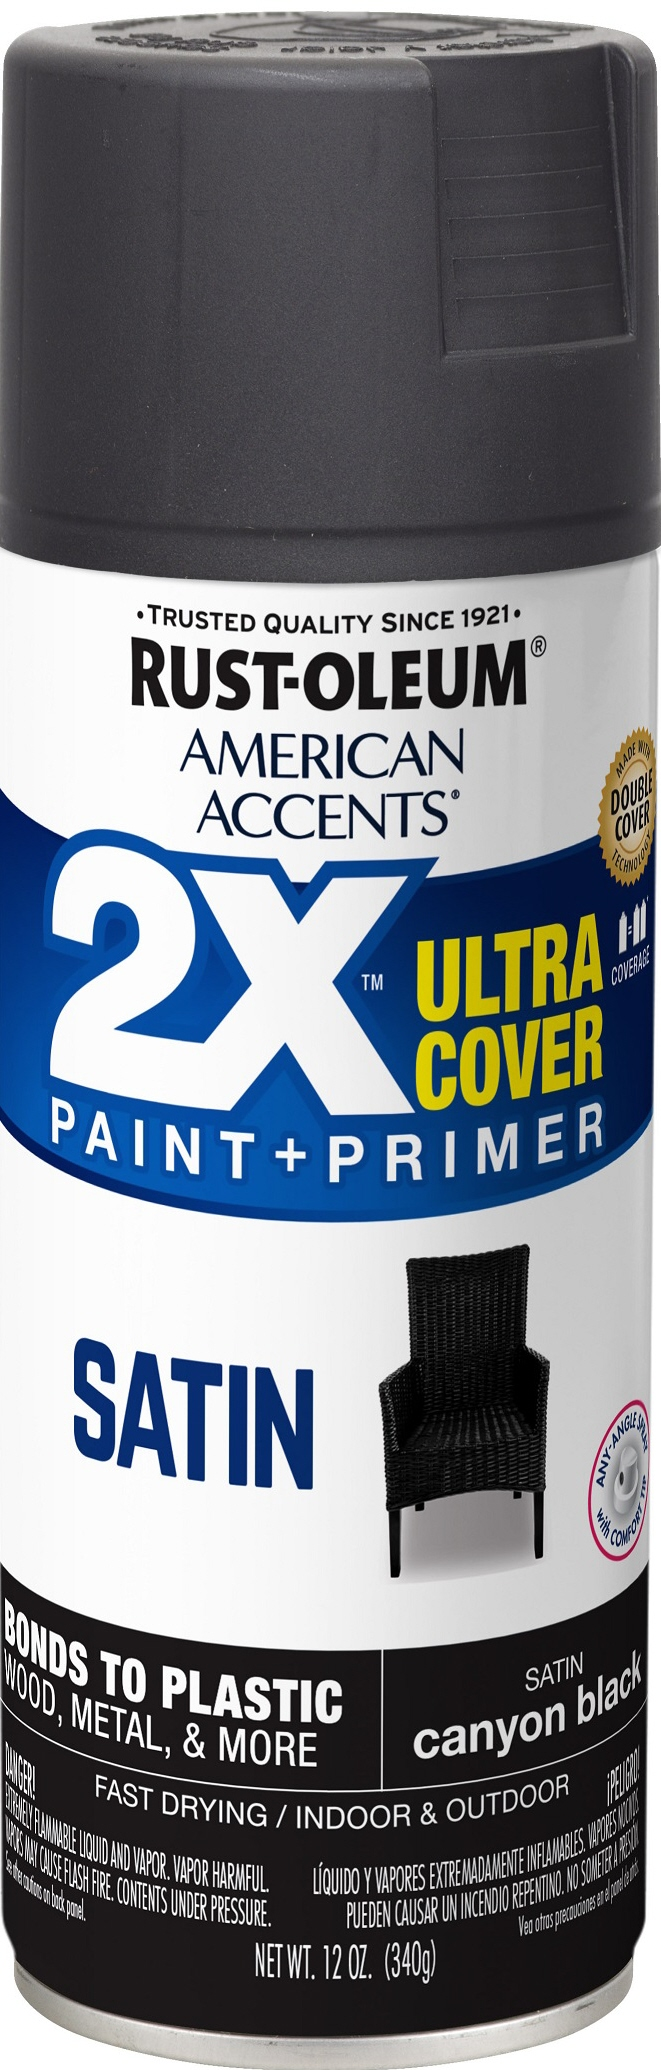 (3 Pack) Rust-Oleum American Accents Ultra Cover 2X Satin Canyon Black Spray Paint and Primer in 1, 12 oz